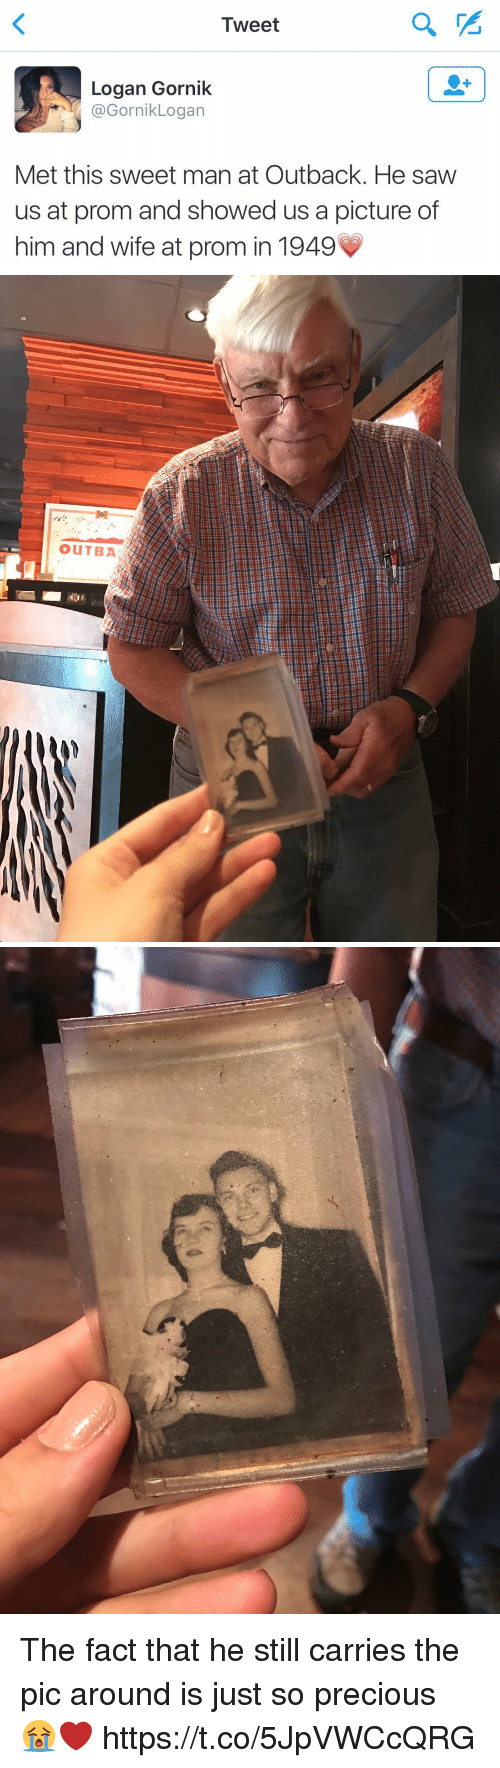 Memes, Precious, and Saw: Tweet  2  Logan Gornik  @GornikLogan  Met this sweet man at Outback. He saw  us at prom and showed us a picture of  him and wife at prom in 1949   OUTBA The fact that he still carries the pic around is just so precious 😭❤️ https://t.co/5JpVWCcQRG